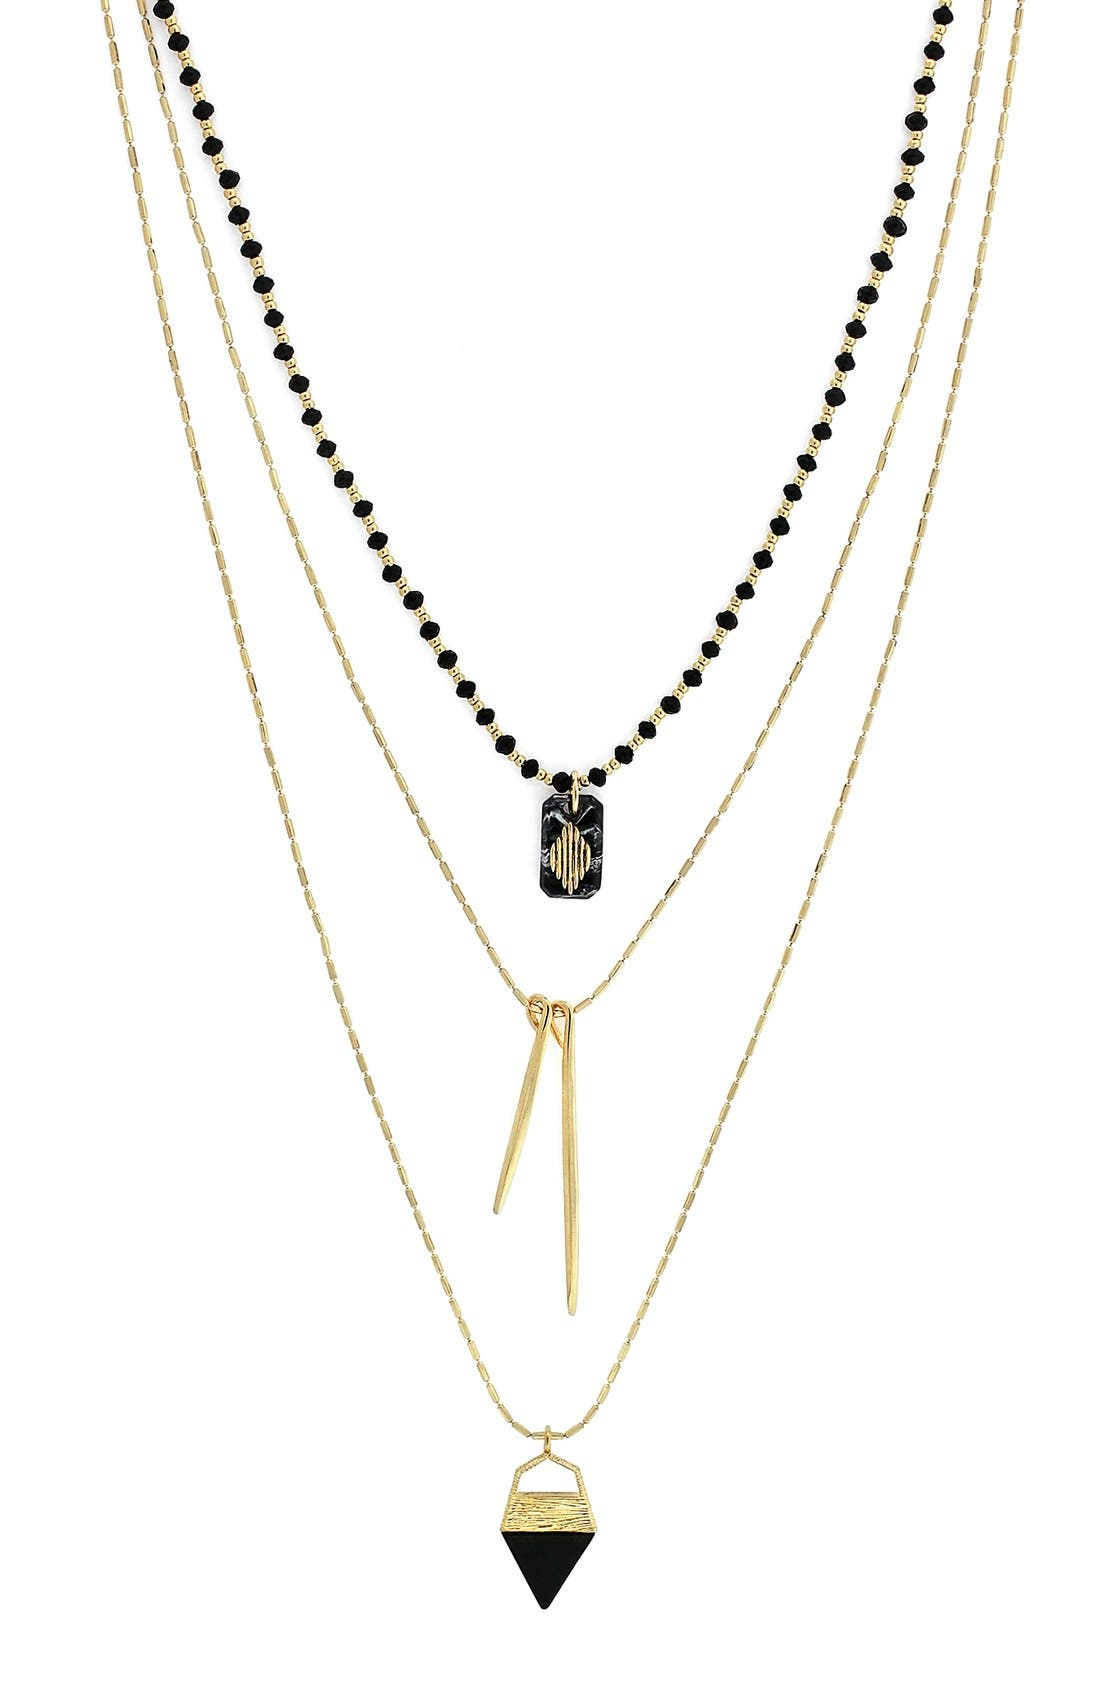 Alternate Image 1 Selected - Vince Camuto 'Serengeti Breeze' Triple Strand Necklace